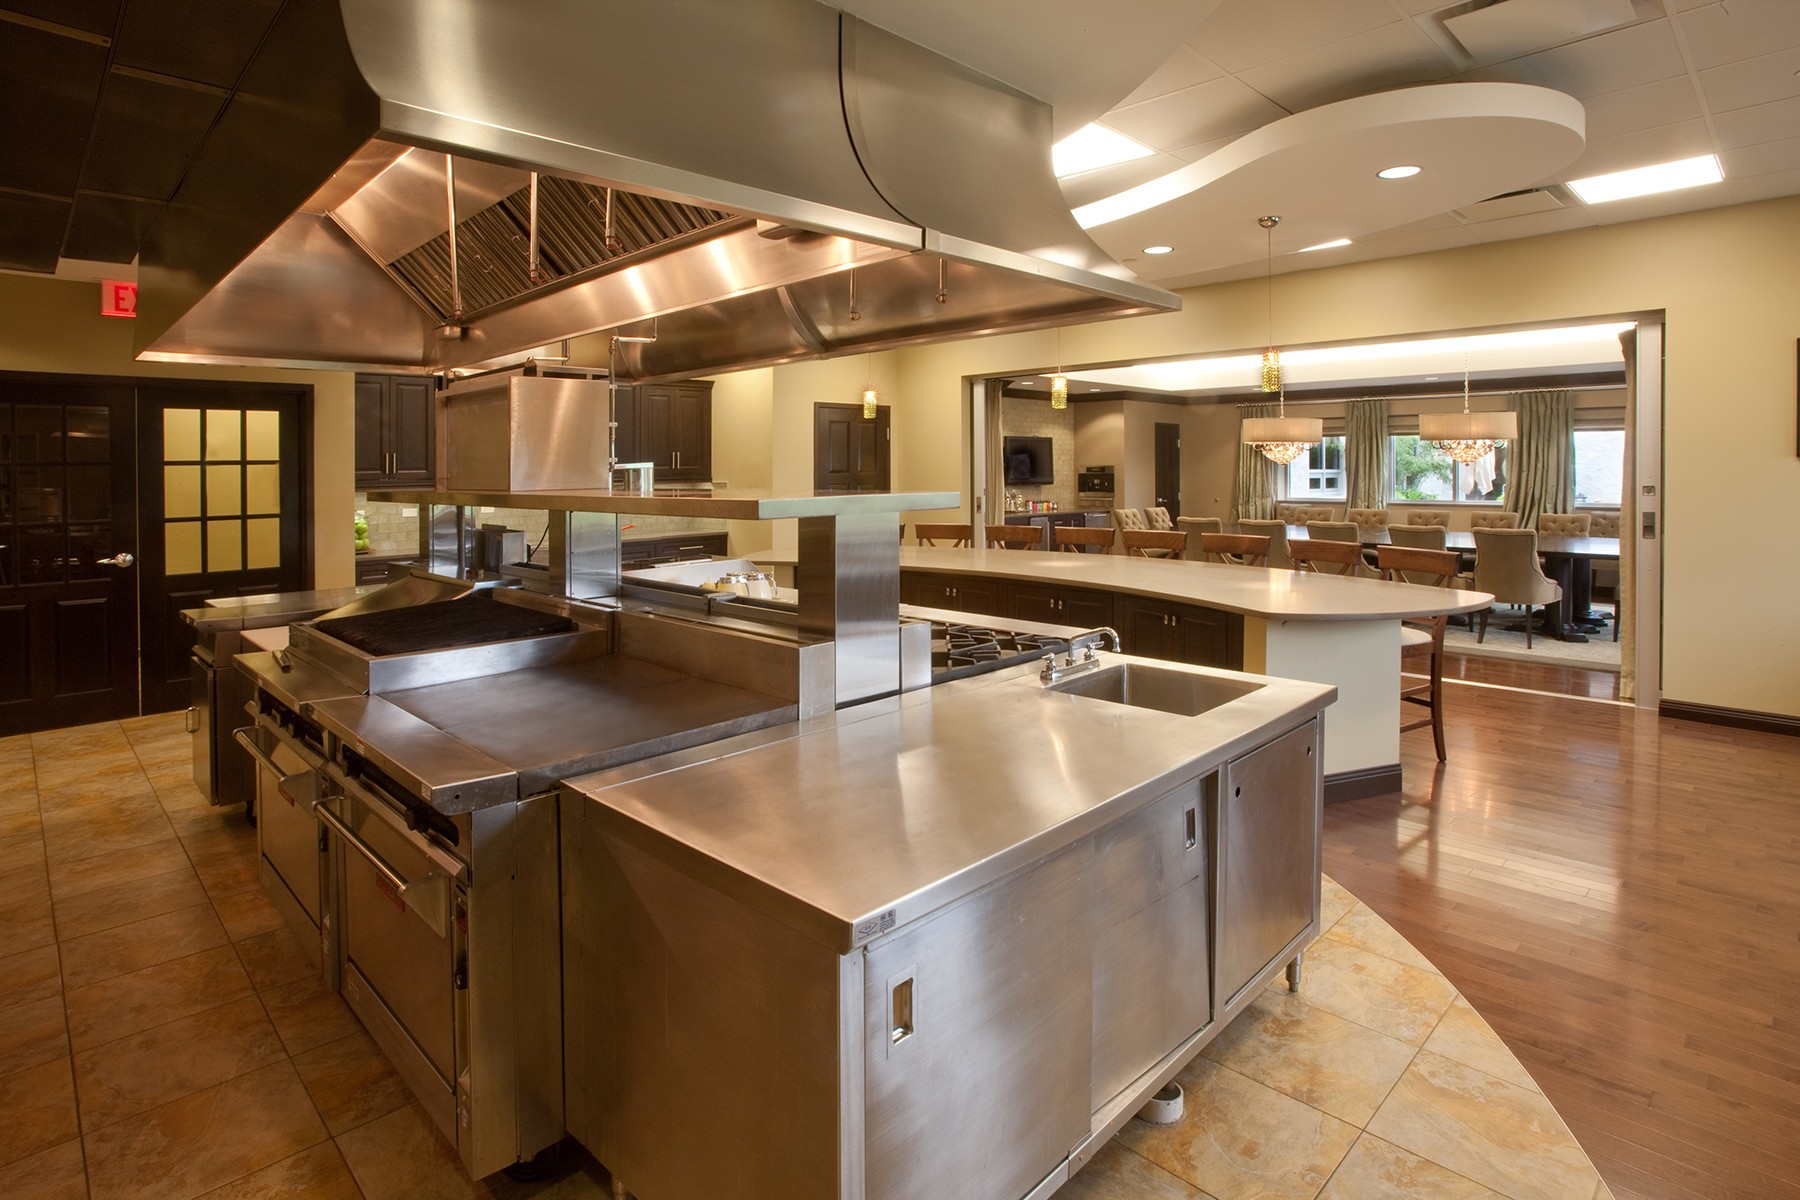 Design Your Commercial Kitchens. You have to carefully plan your